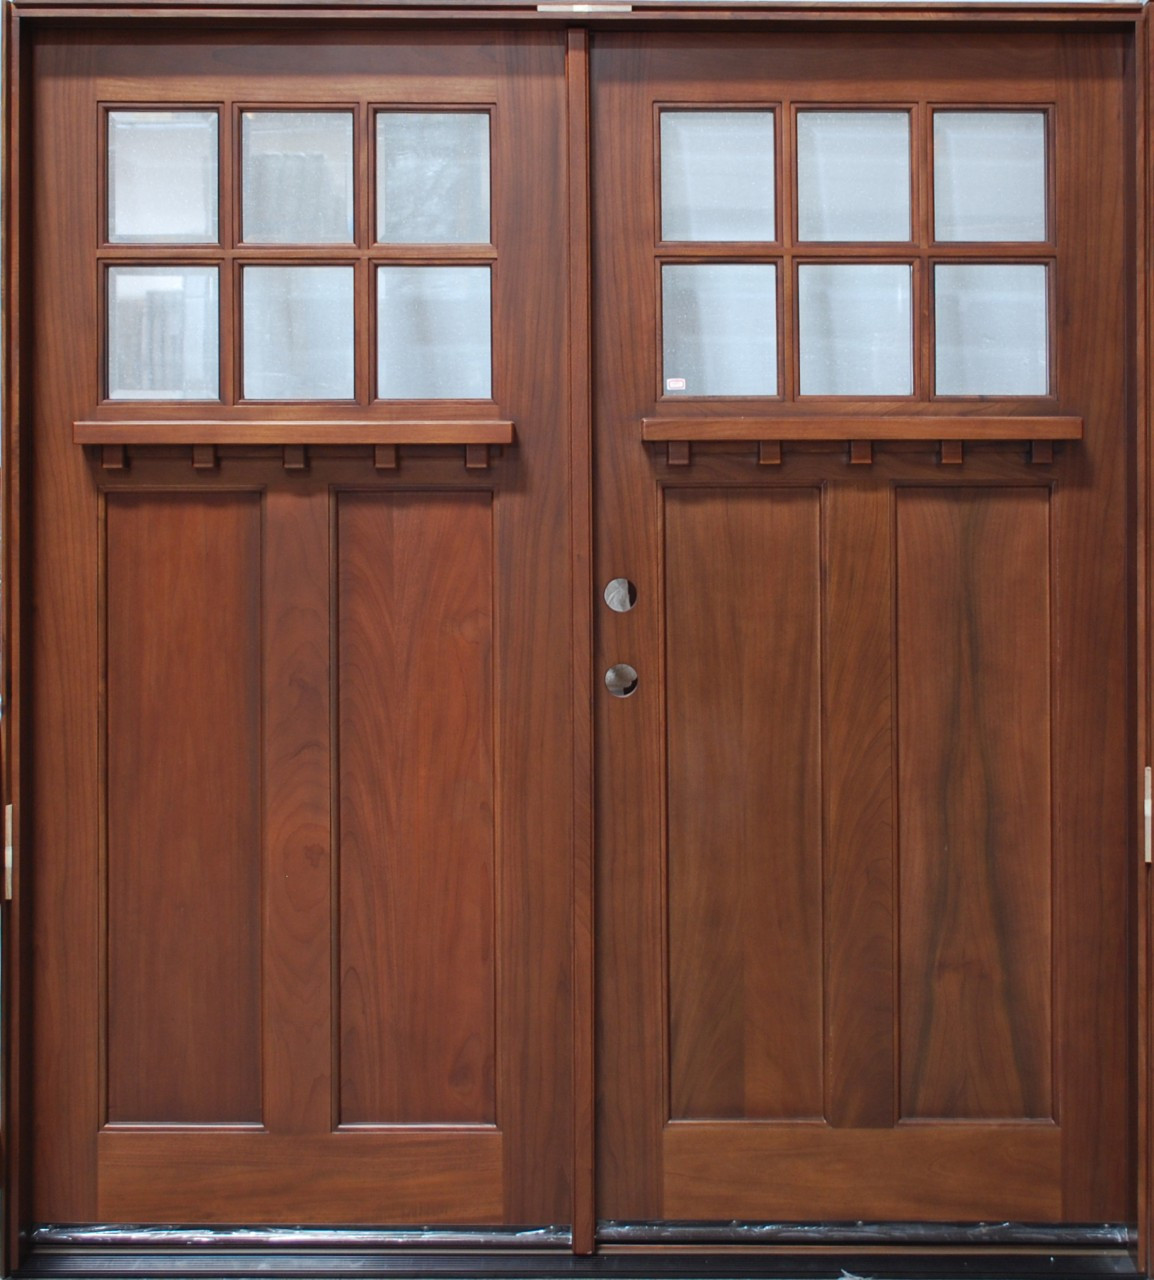 Discount door center prehung and prefinished craftman for New double front doors